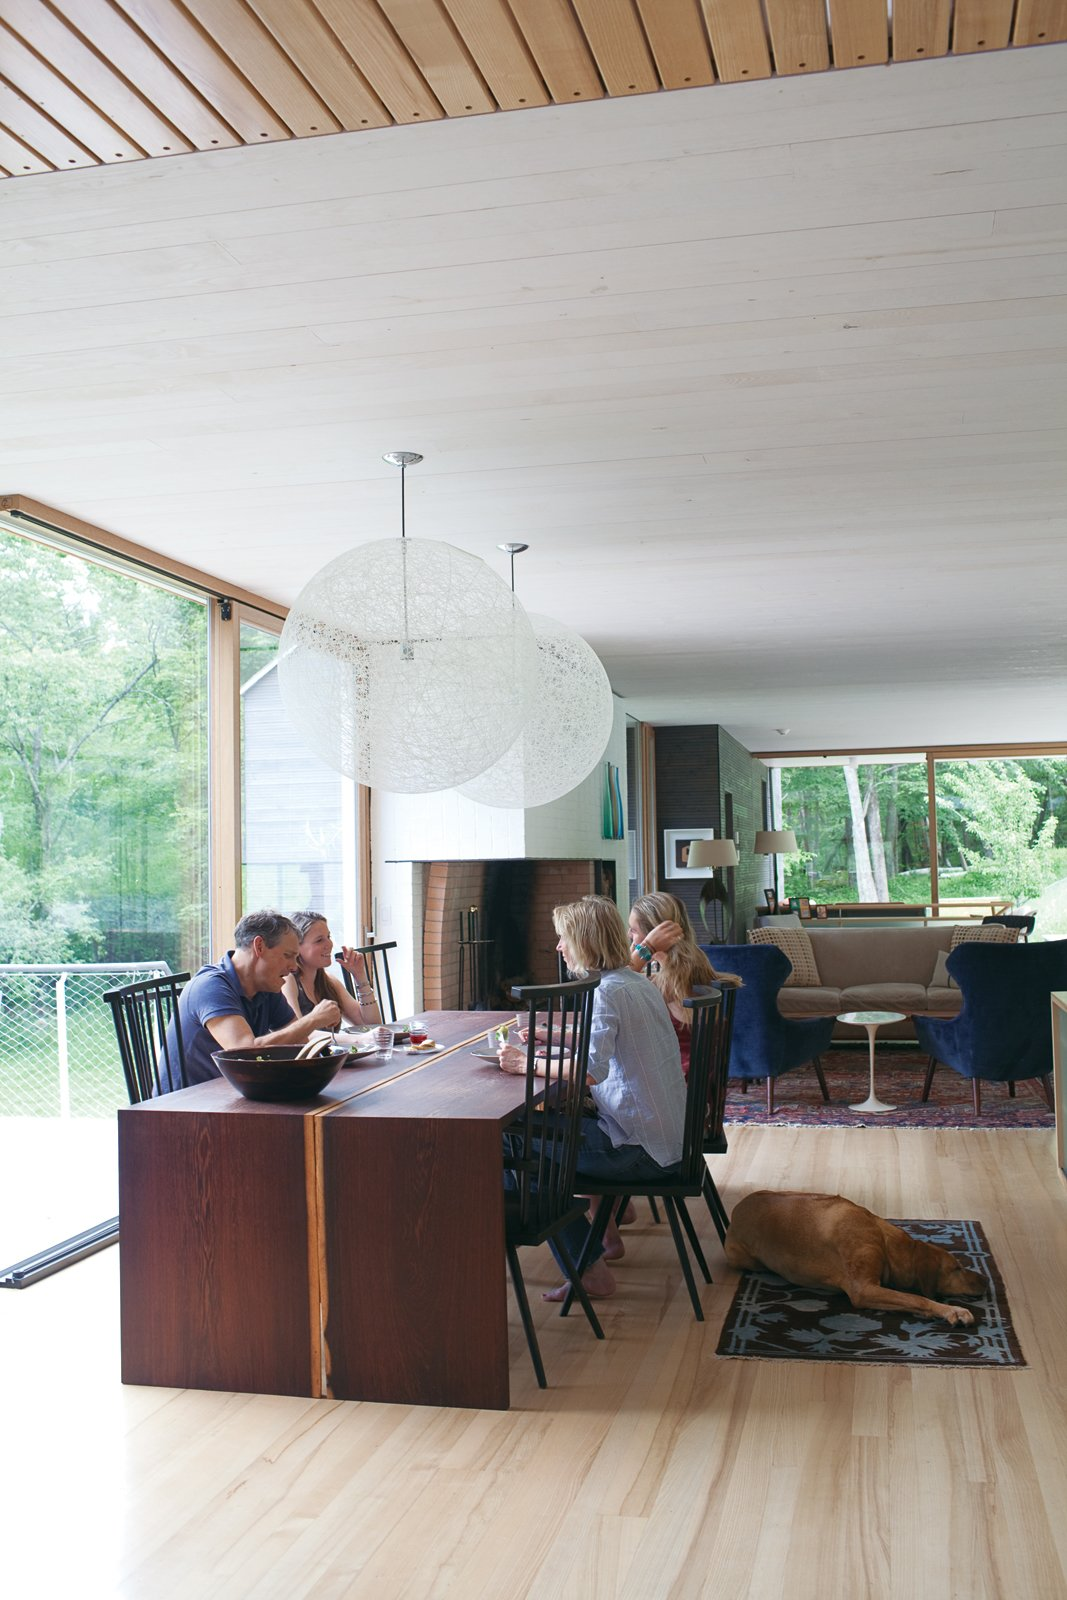 The family relaxes in their home's dining   room, sited atop the old foundation. Organschi designed and fabricated the table of wenge wood; the chairs were inherited from his uncle; and the pendant lights are Bertjan   Pot designs for Moooi. Tagged: Light Hardwood Floor, Table, Pendant Lighting, and Dining Room.  Photo 1 of 9 in Gable-Roofed Rural Weekend Home in Connecticut